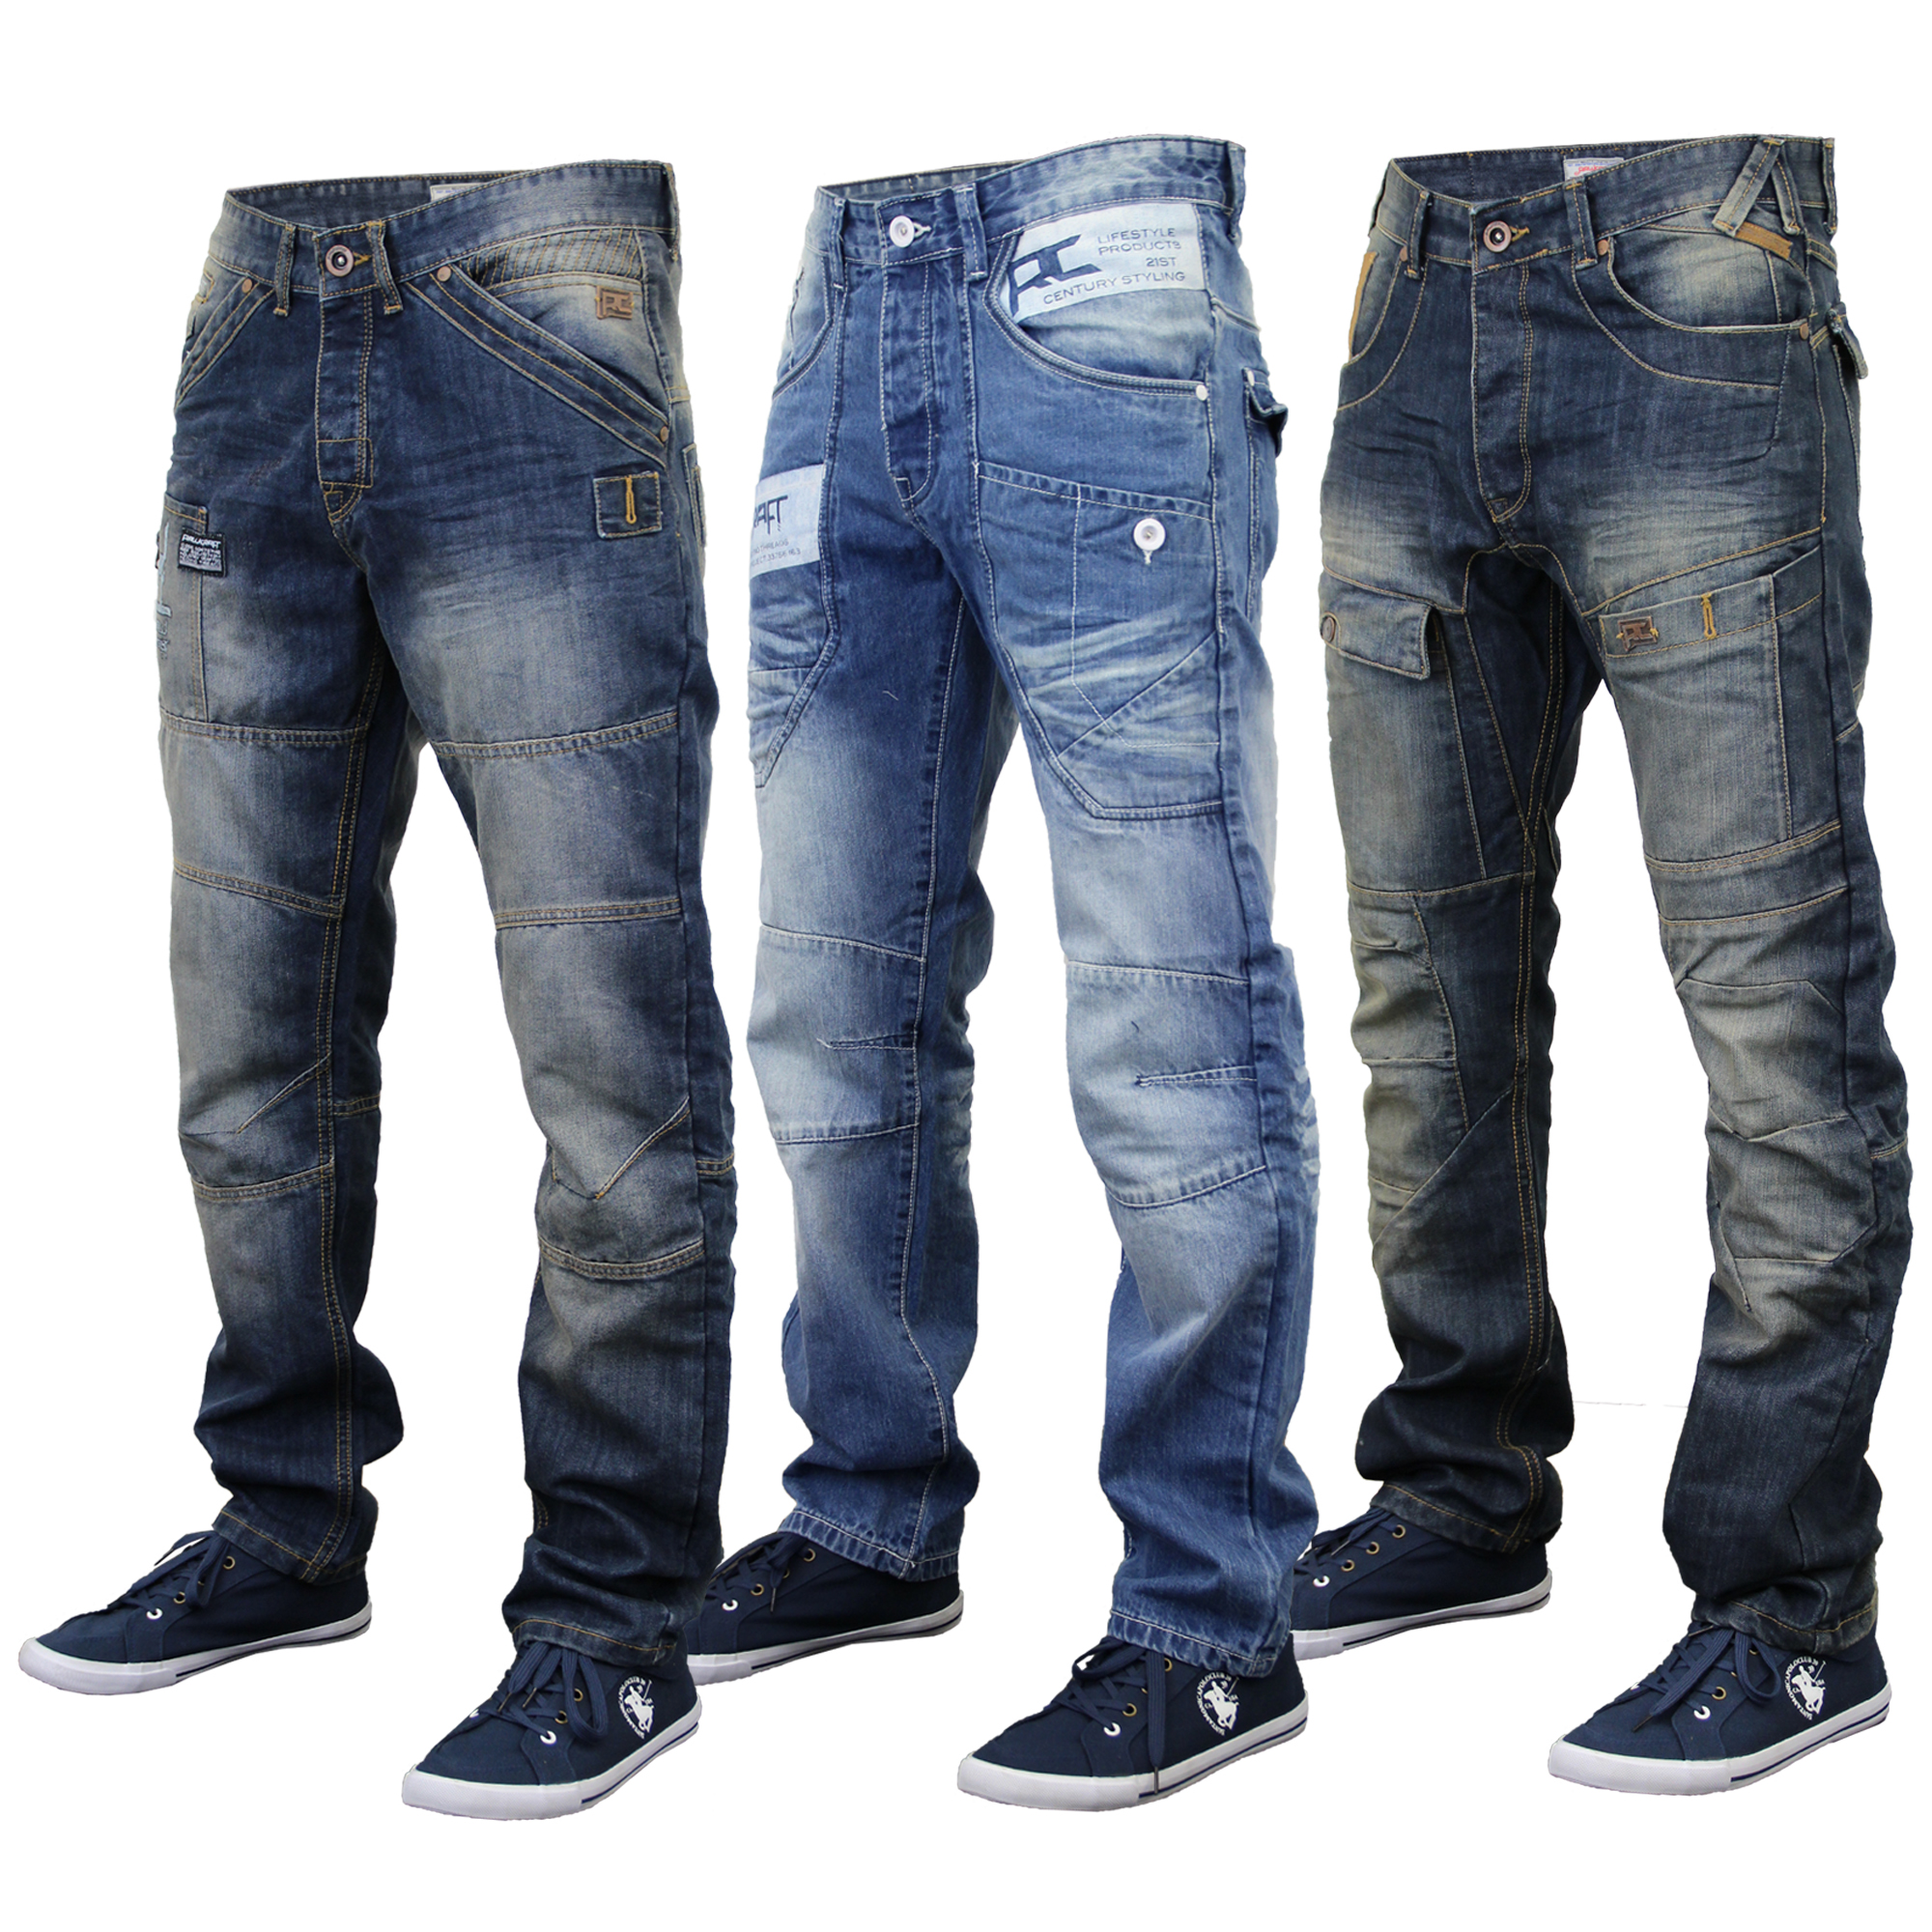 Mens Jeans Every Day of the Week. Every dude needs a good pair of jeans to wear. Even with all the joggers in the world, a pair of denim is needed to make sure the outfit is always on point. Every guy has his favorite style. Maybe it's a pair of ripped jeans that a man can pair with any men's t-shirt and still look right. Maybe you like your stretch jeans that have some give while you're.